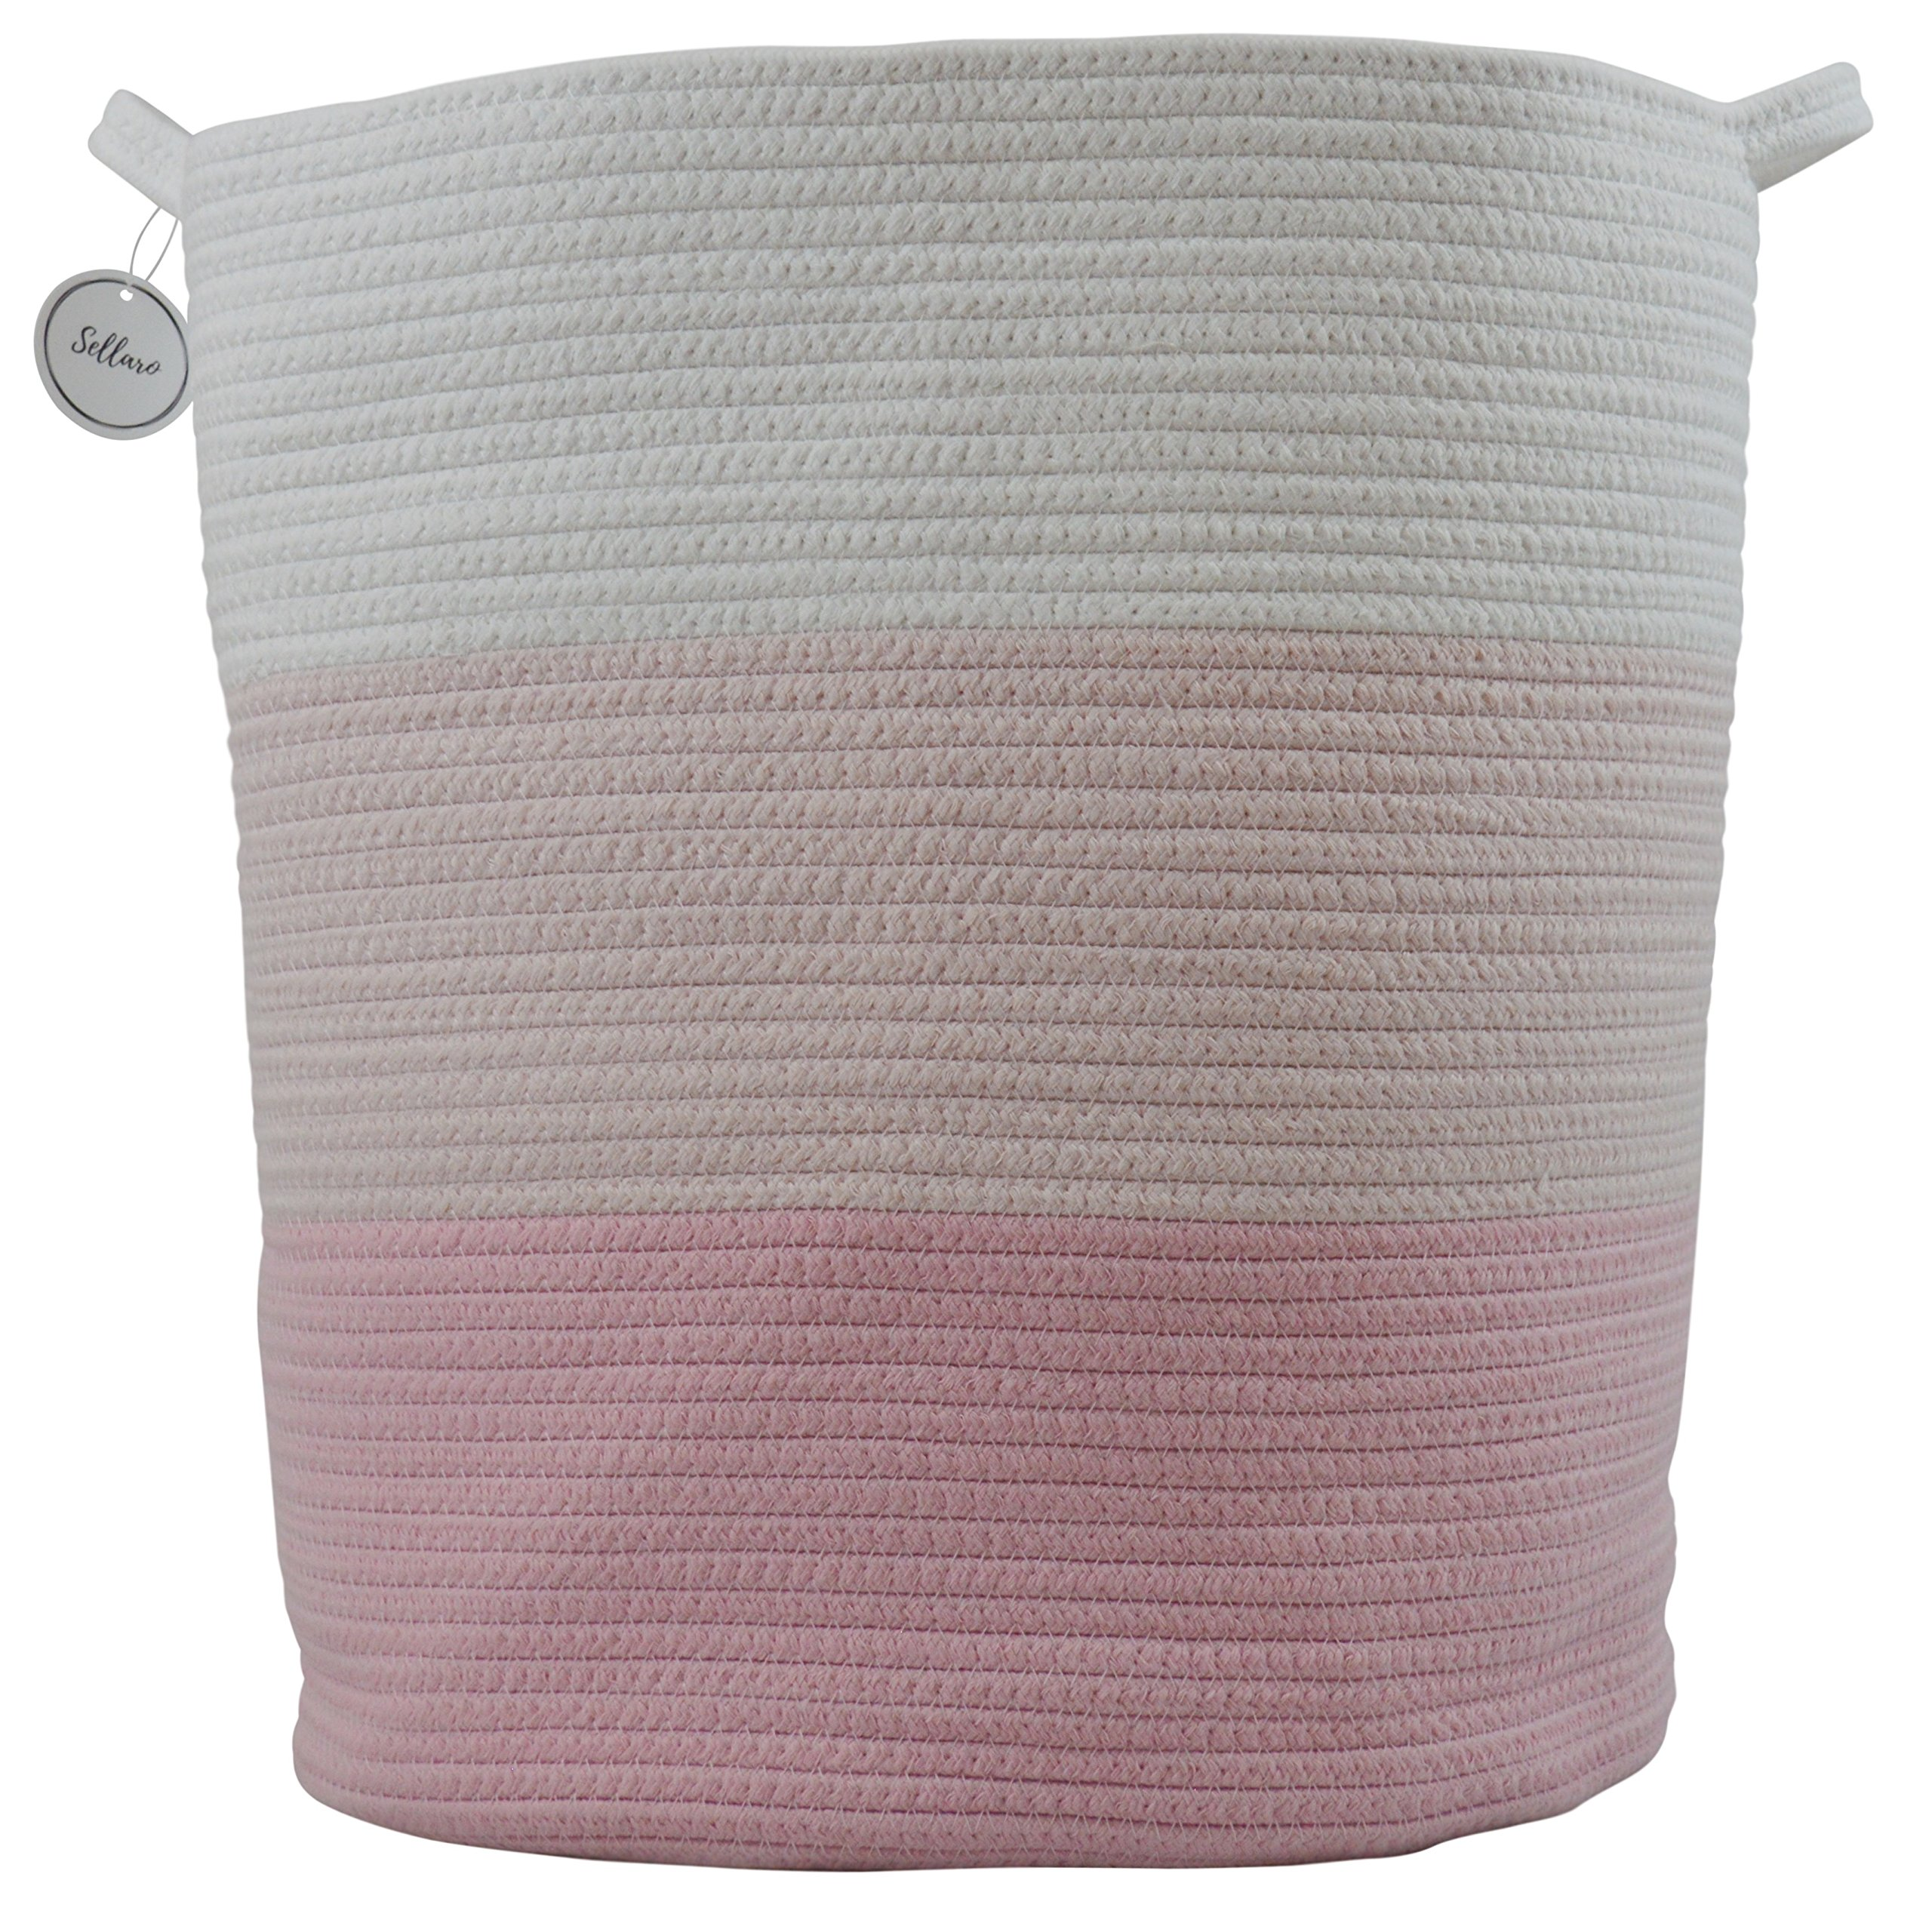 Cotton Rope Basket for Storage and Organization in Baby Nursery or Kids Room | Extra Large 18'' x 16'' Decorative Laundry Hamper, Organizer for Blankets, Towels, Toys, Books | Pink/White by Sellaro Home